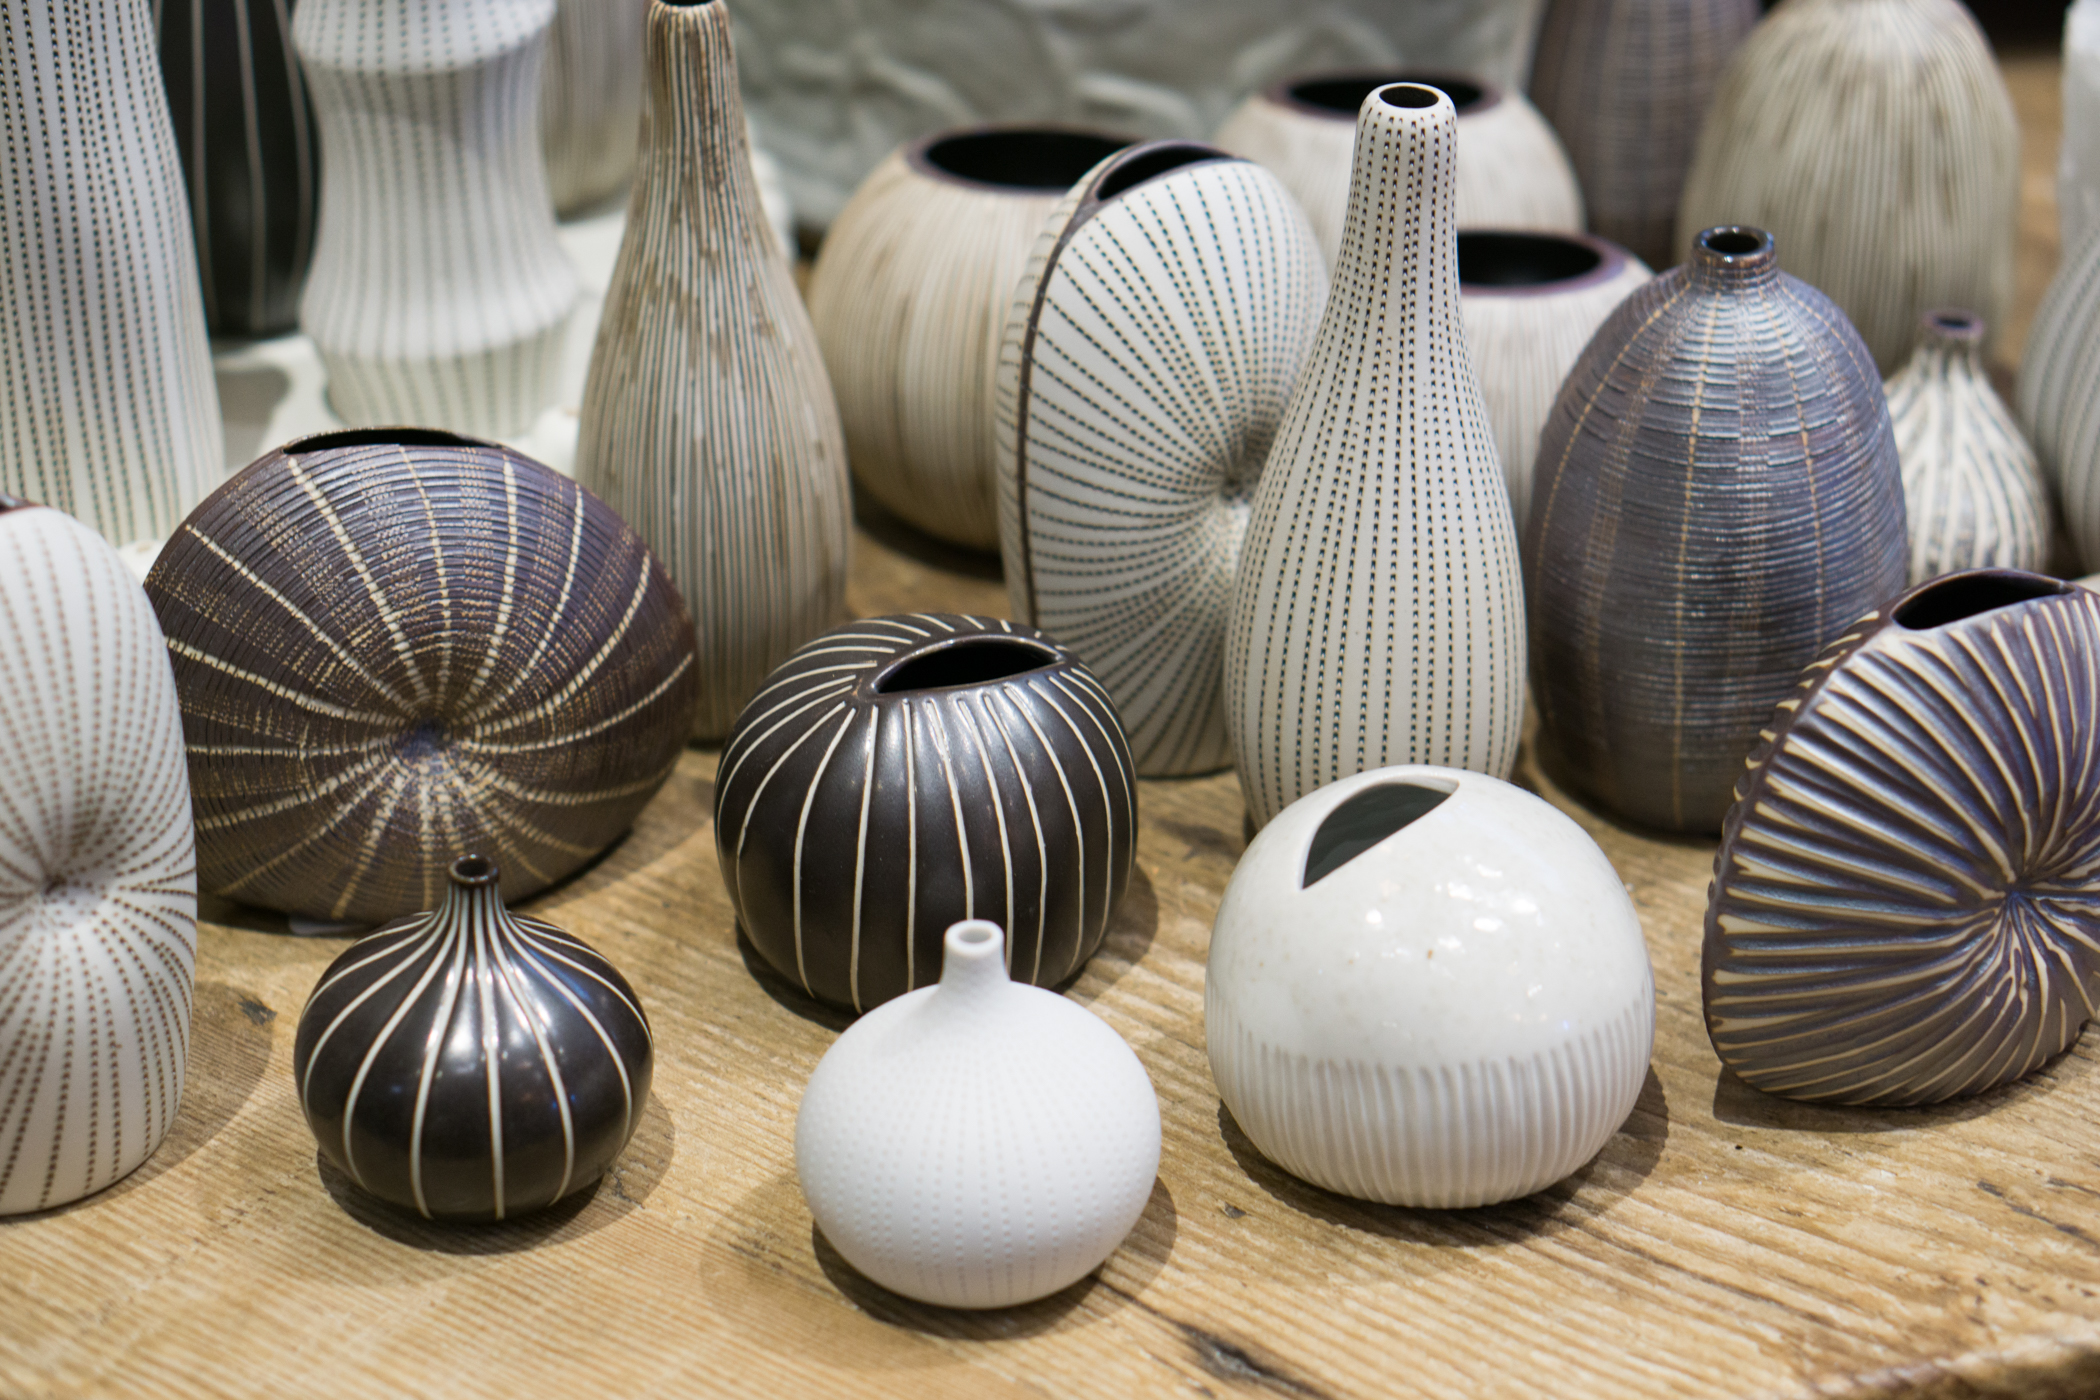 An image of a black and white art ceramic vases